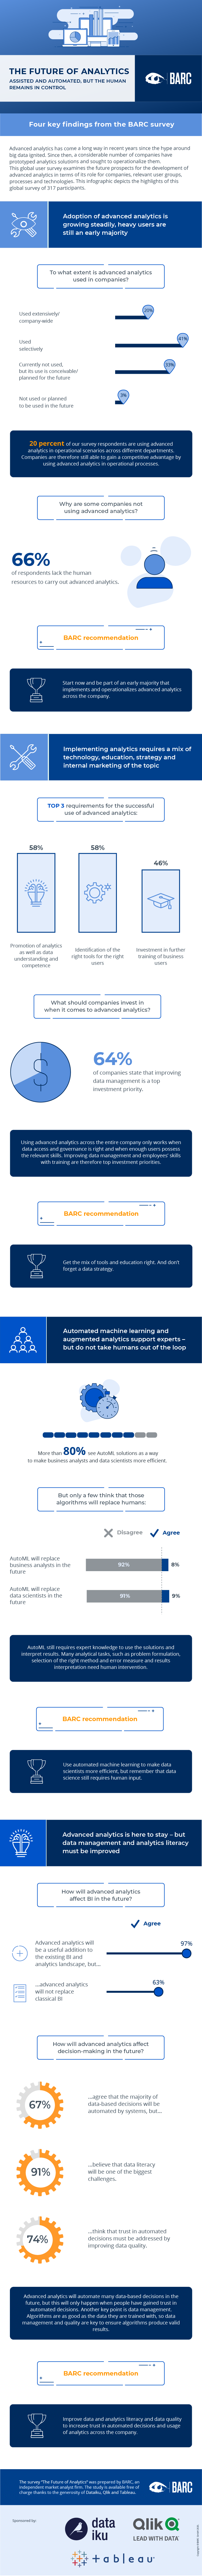 The Future of Analytics infographic